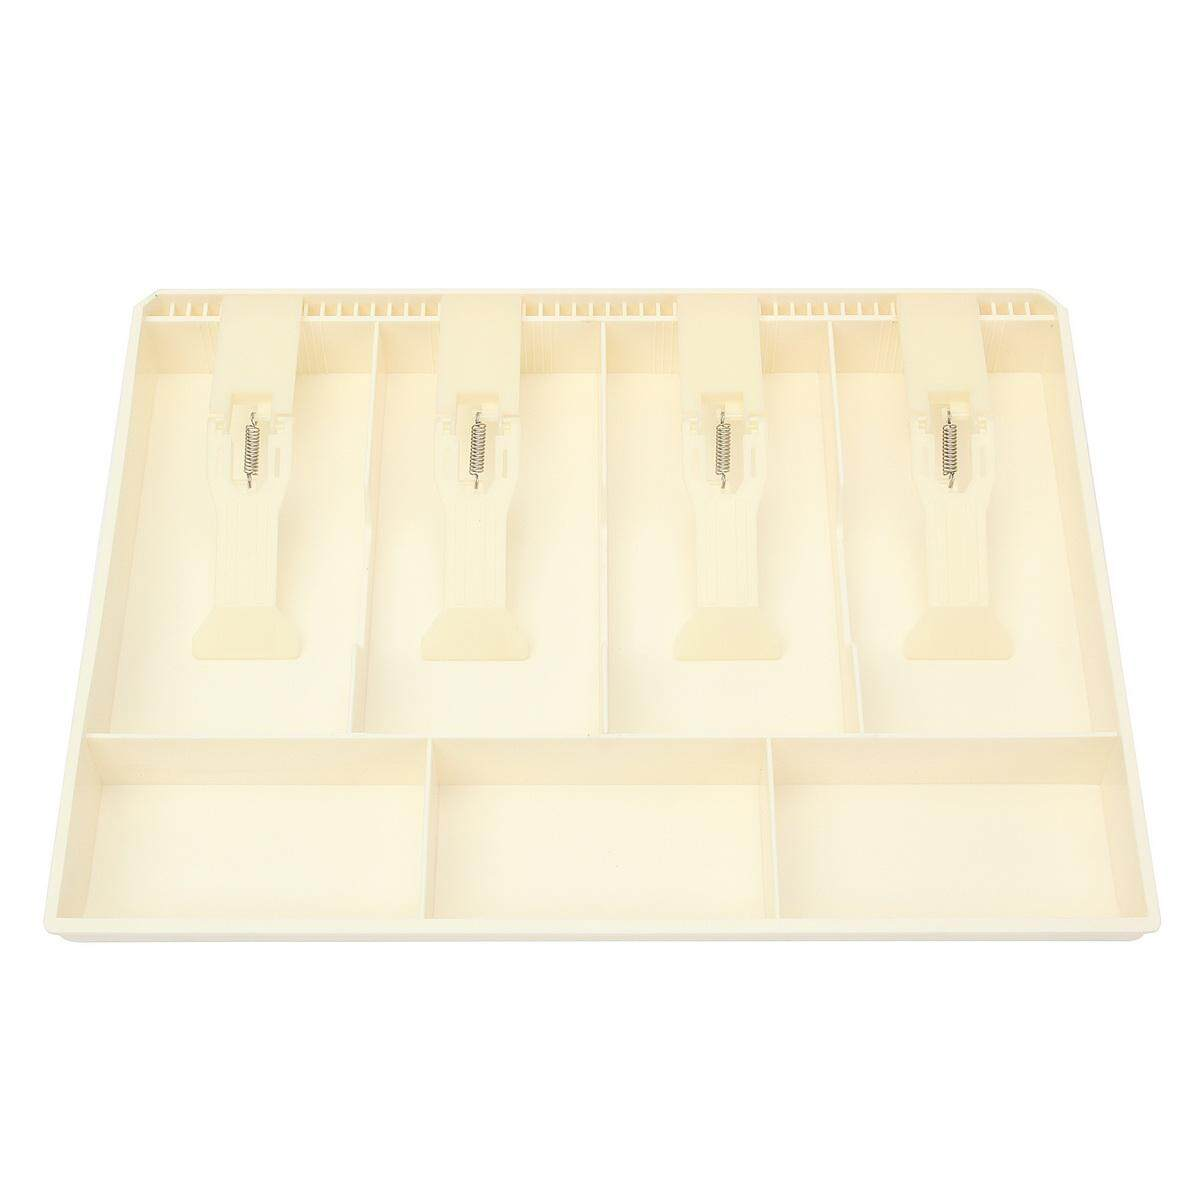 Cash Coin Register Replacement Money Drawer Storage Box With 4 Bill 3 Coin Trays White By Glimmer.